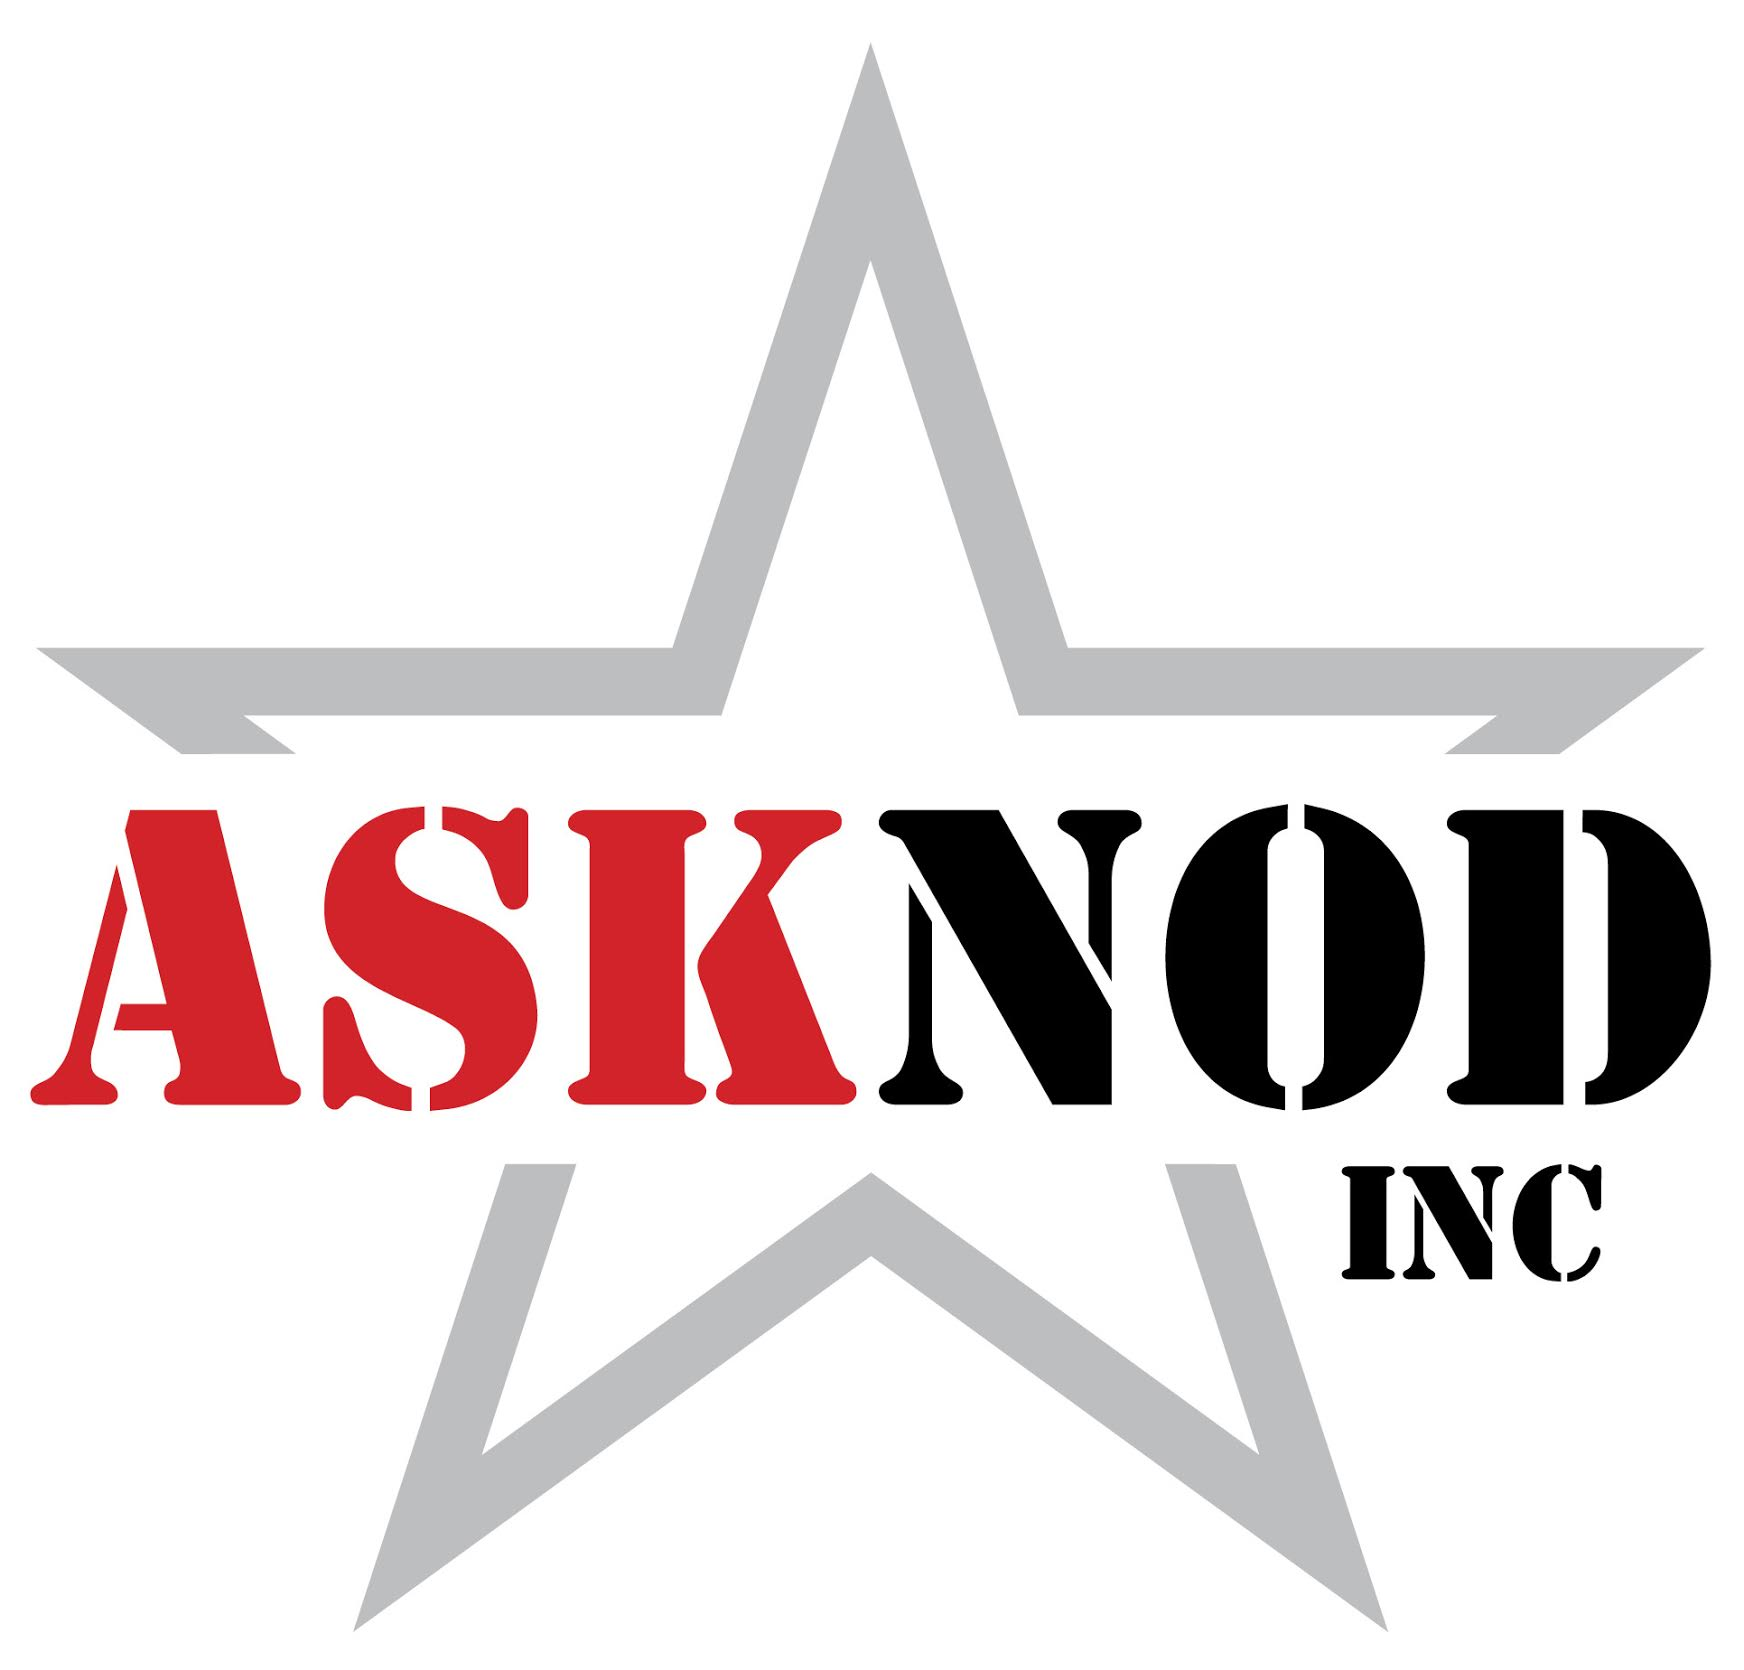 VA RATINGS–AM I 100% OR NOT? | Asknod Veterans Claims Help